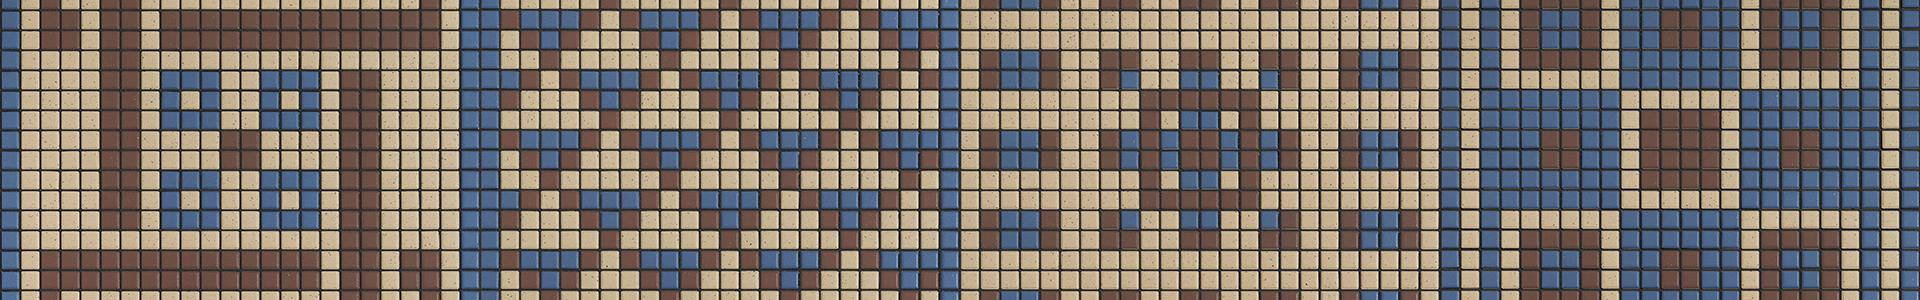 Mosaic tiles catalogs